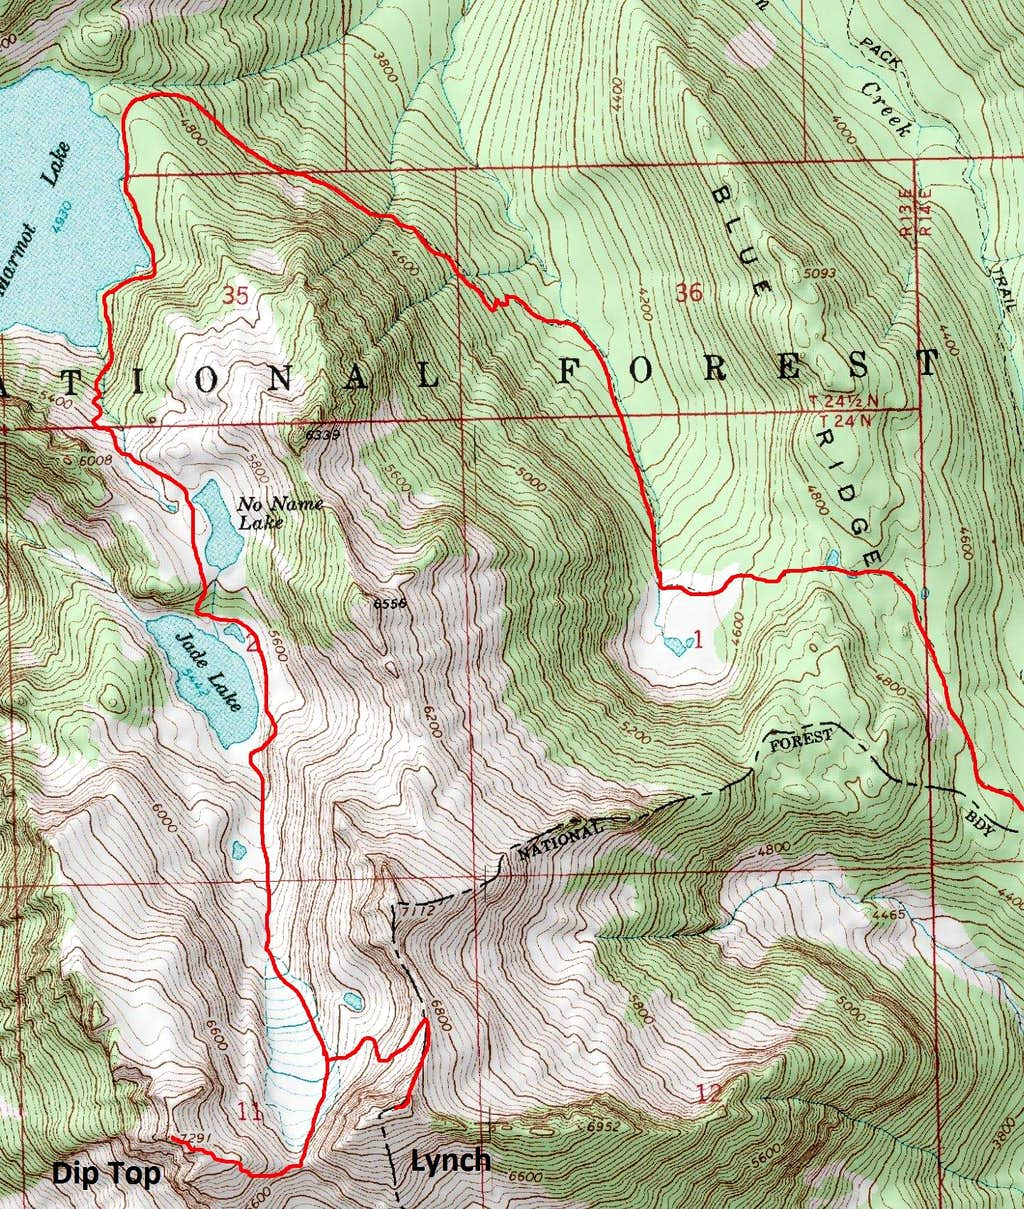 Dip Top / Lynch Routes Map